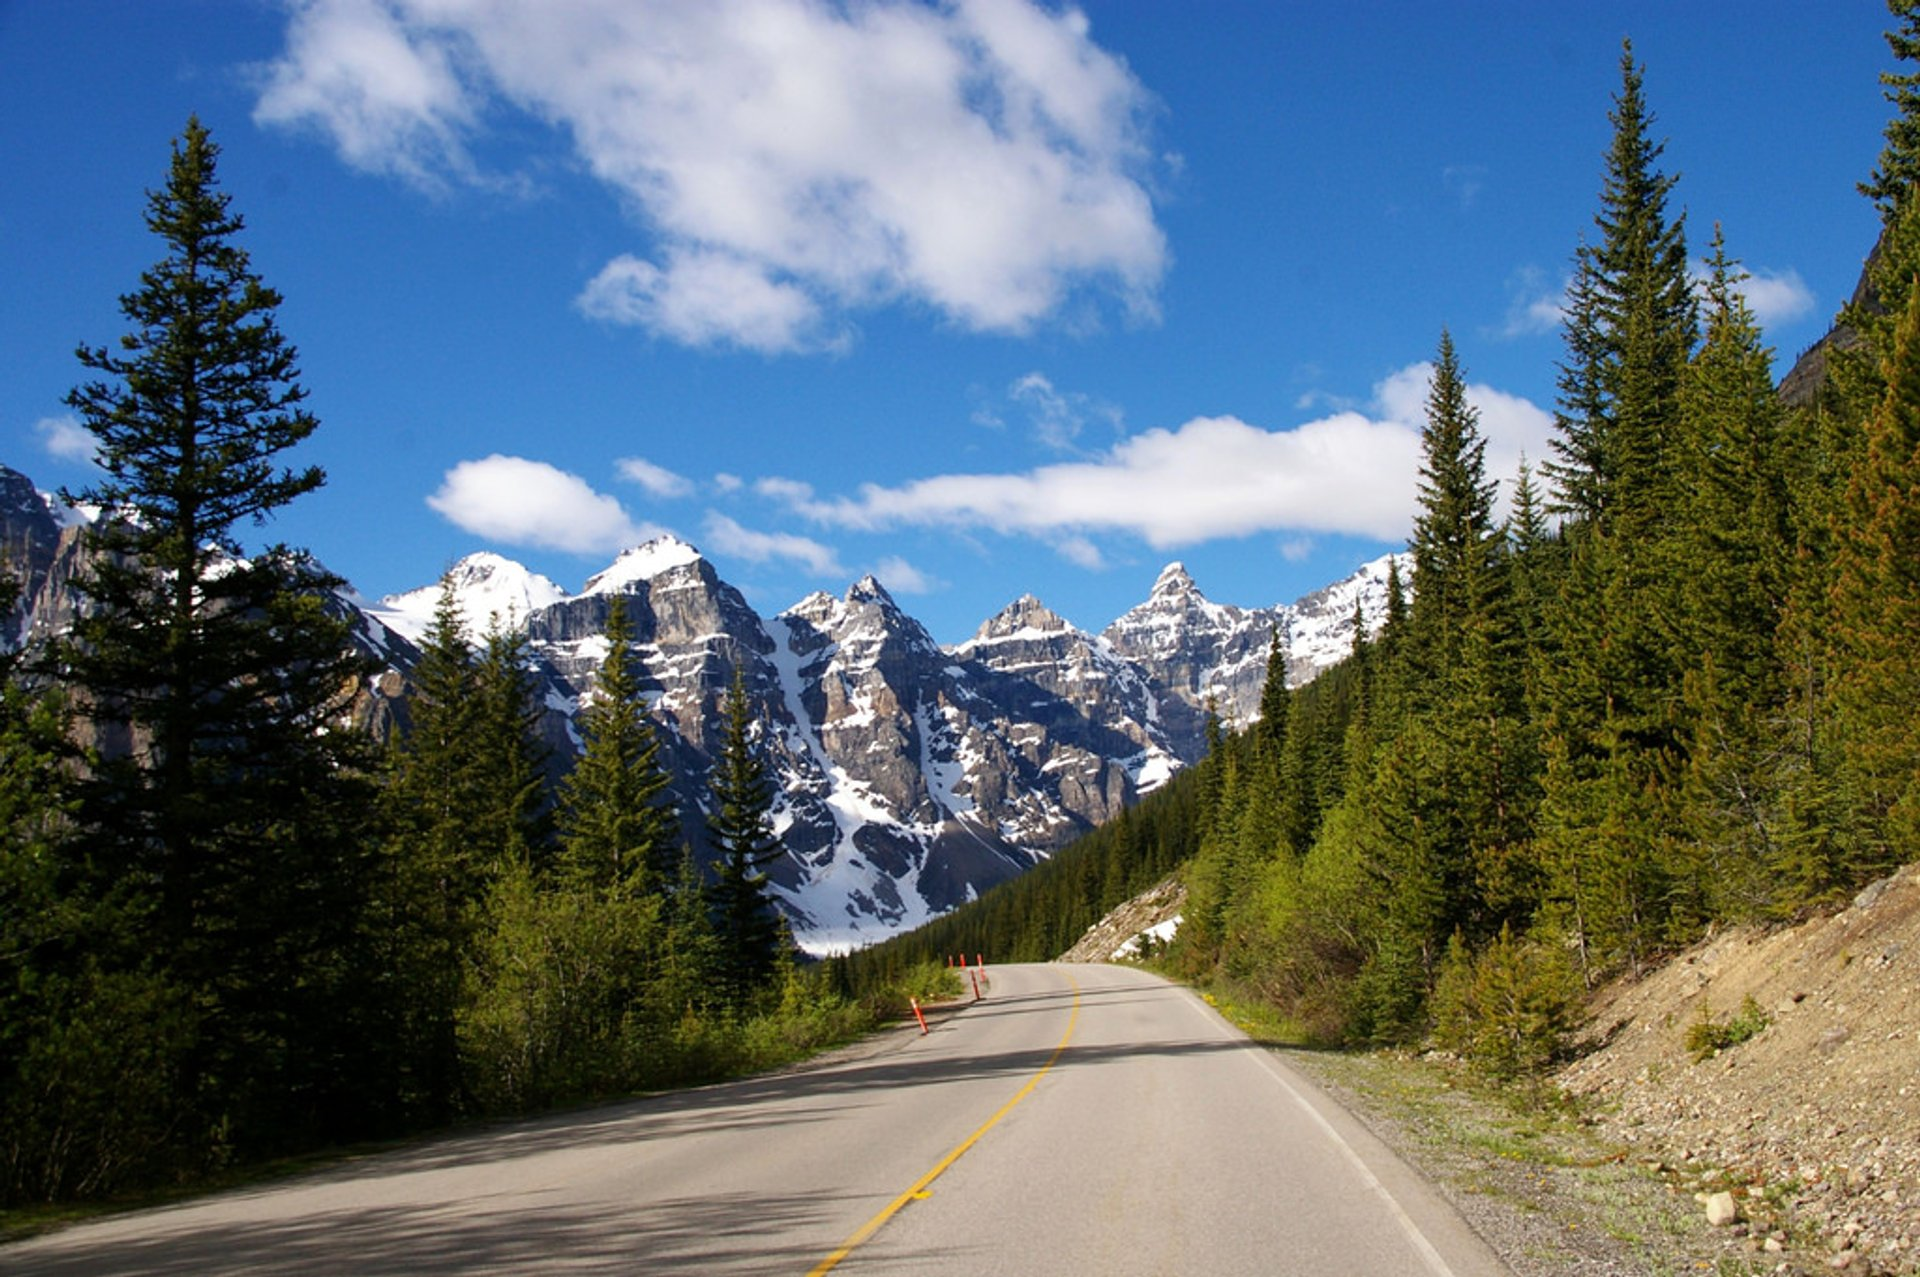 Road to Moraine Lake 2019